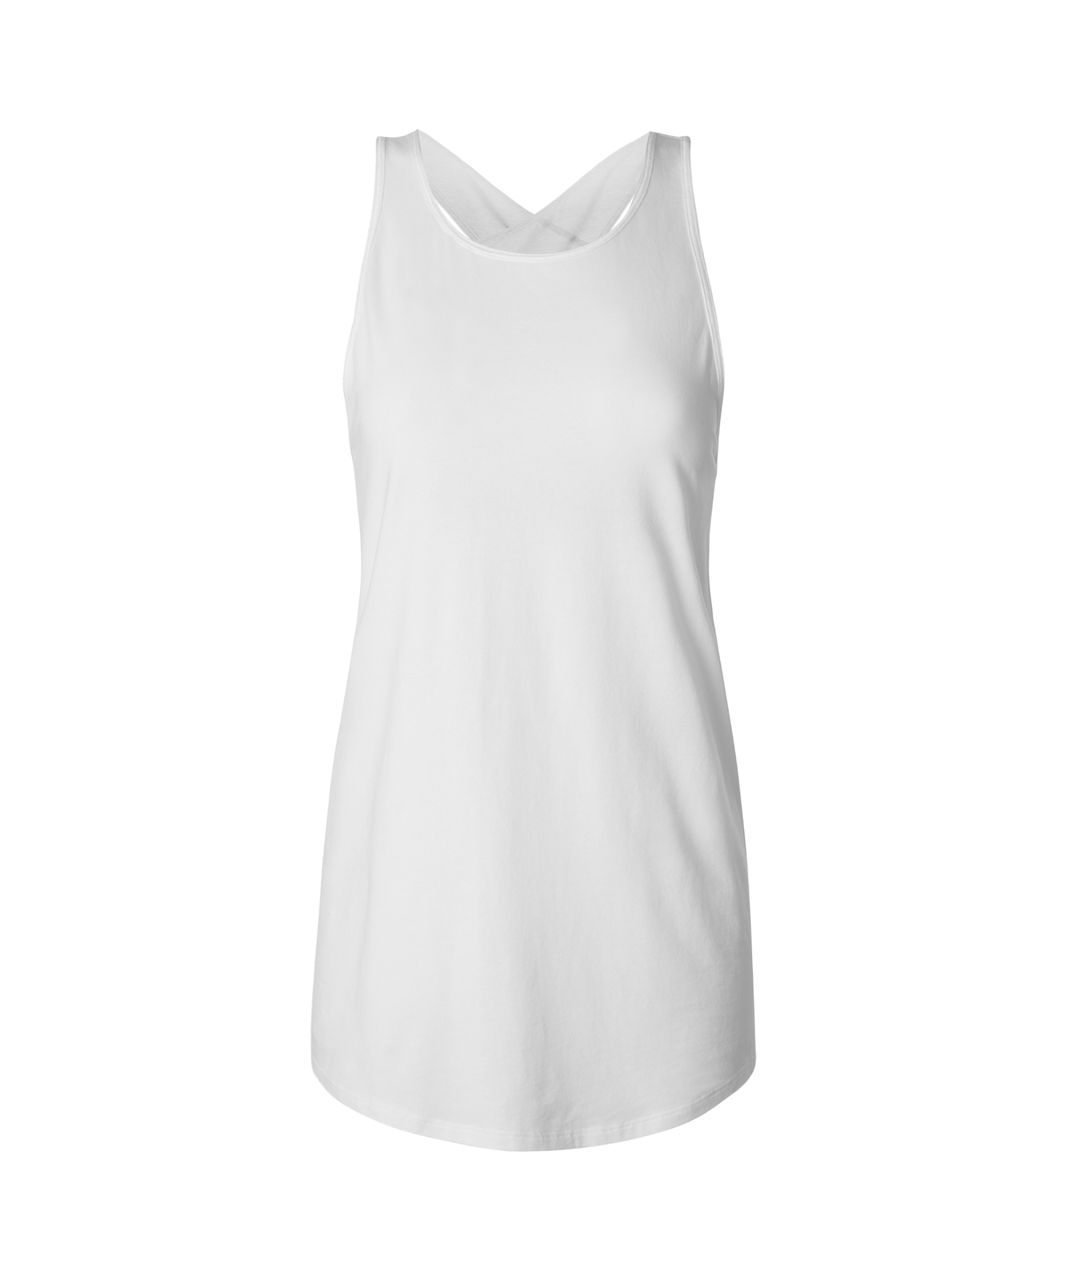 Lululemon Physically Fit Tank - White